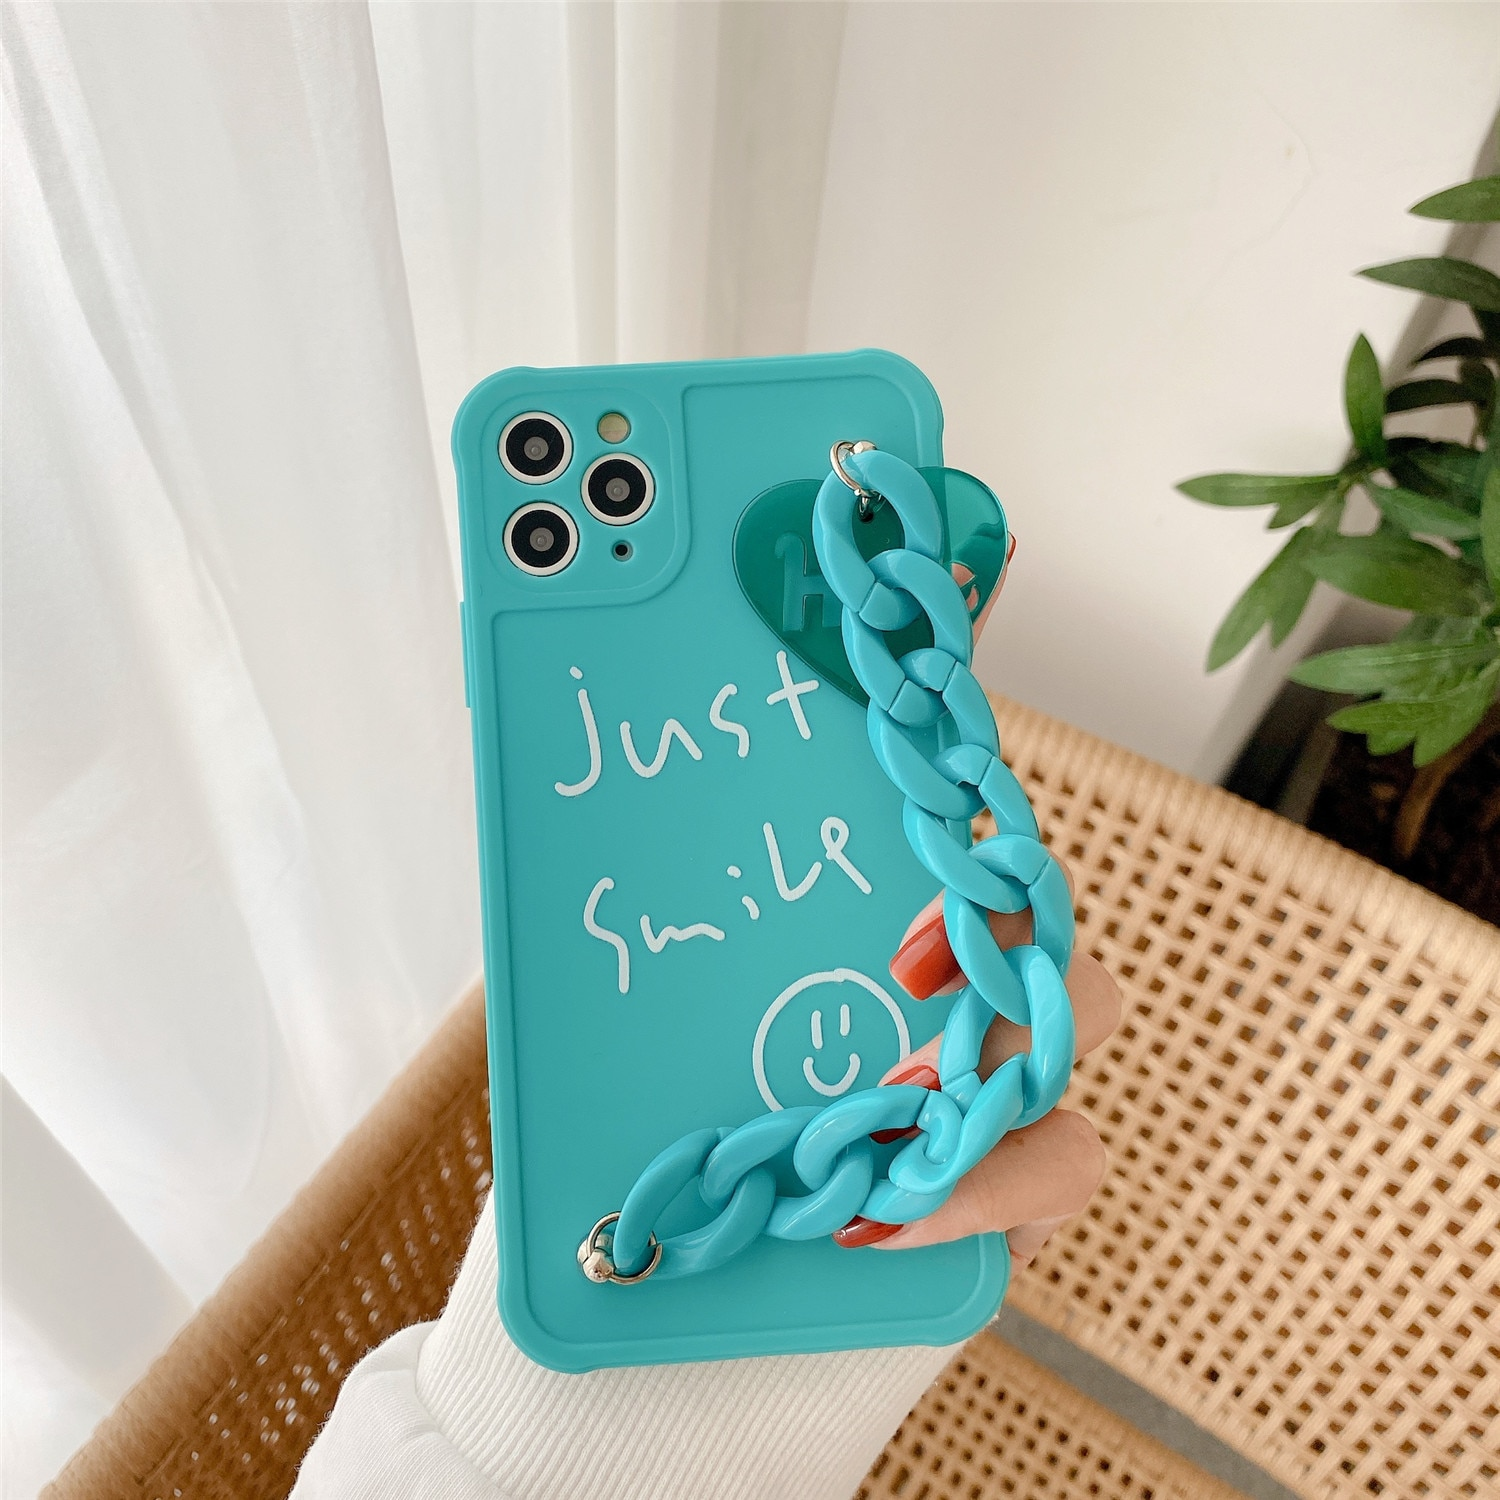 For IPhone 12 Promax Creativity Bracelet Hold Just Smile Simple Cover For IPhone 7 8 Plus X Silicone 11 11Pro 12Pro XS Max Cases enlarge